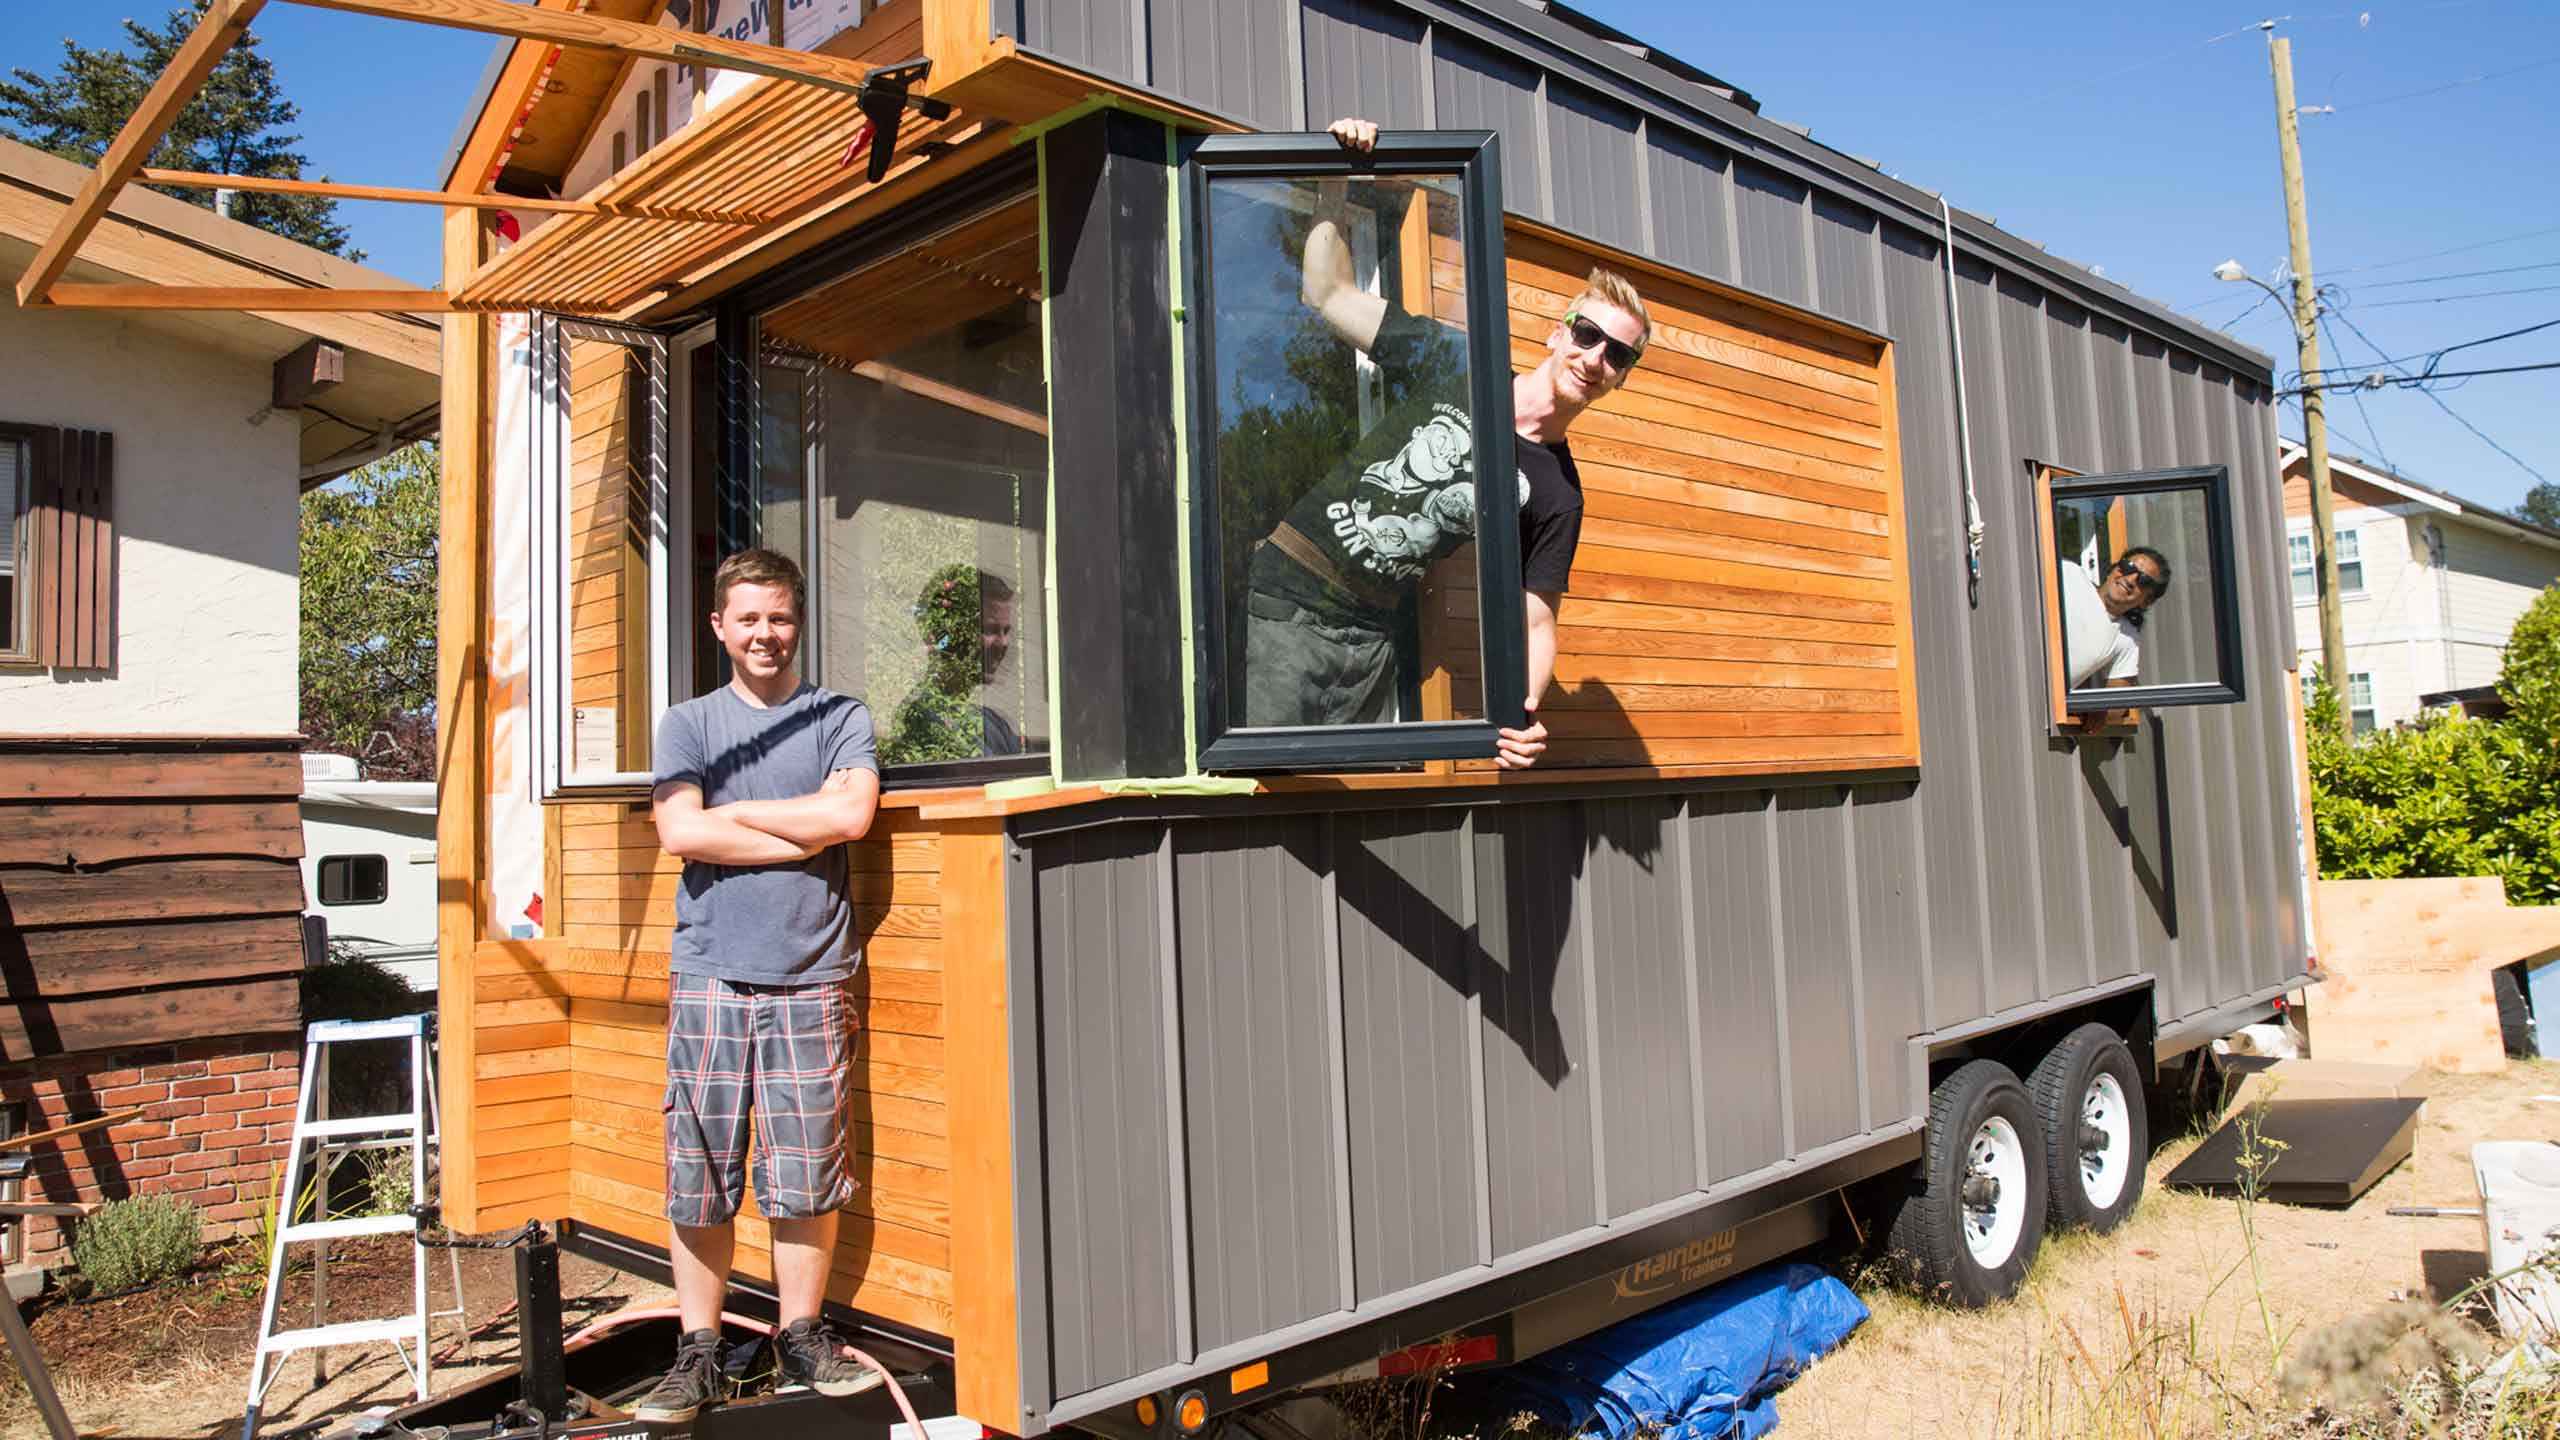 Tiny house project could solve big density problem in Toronto